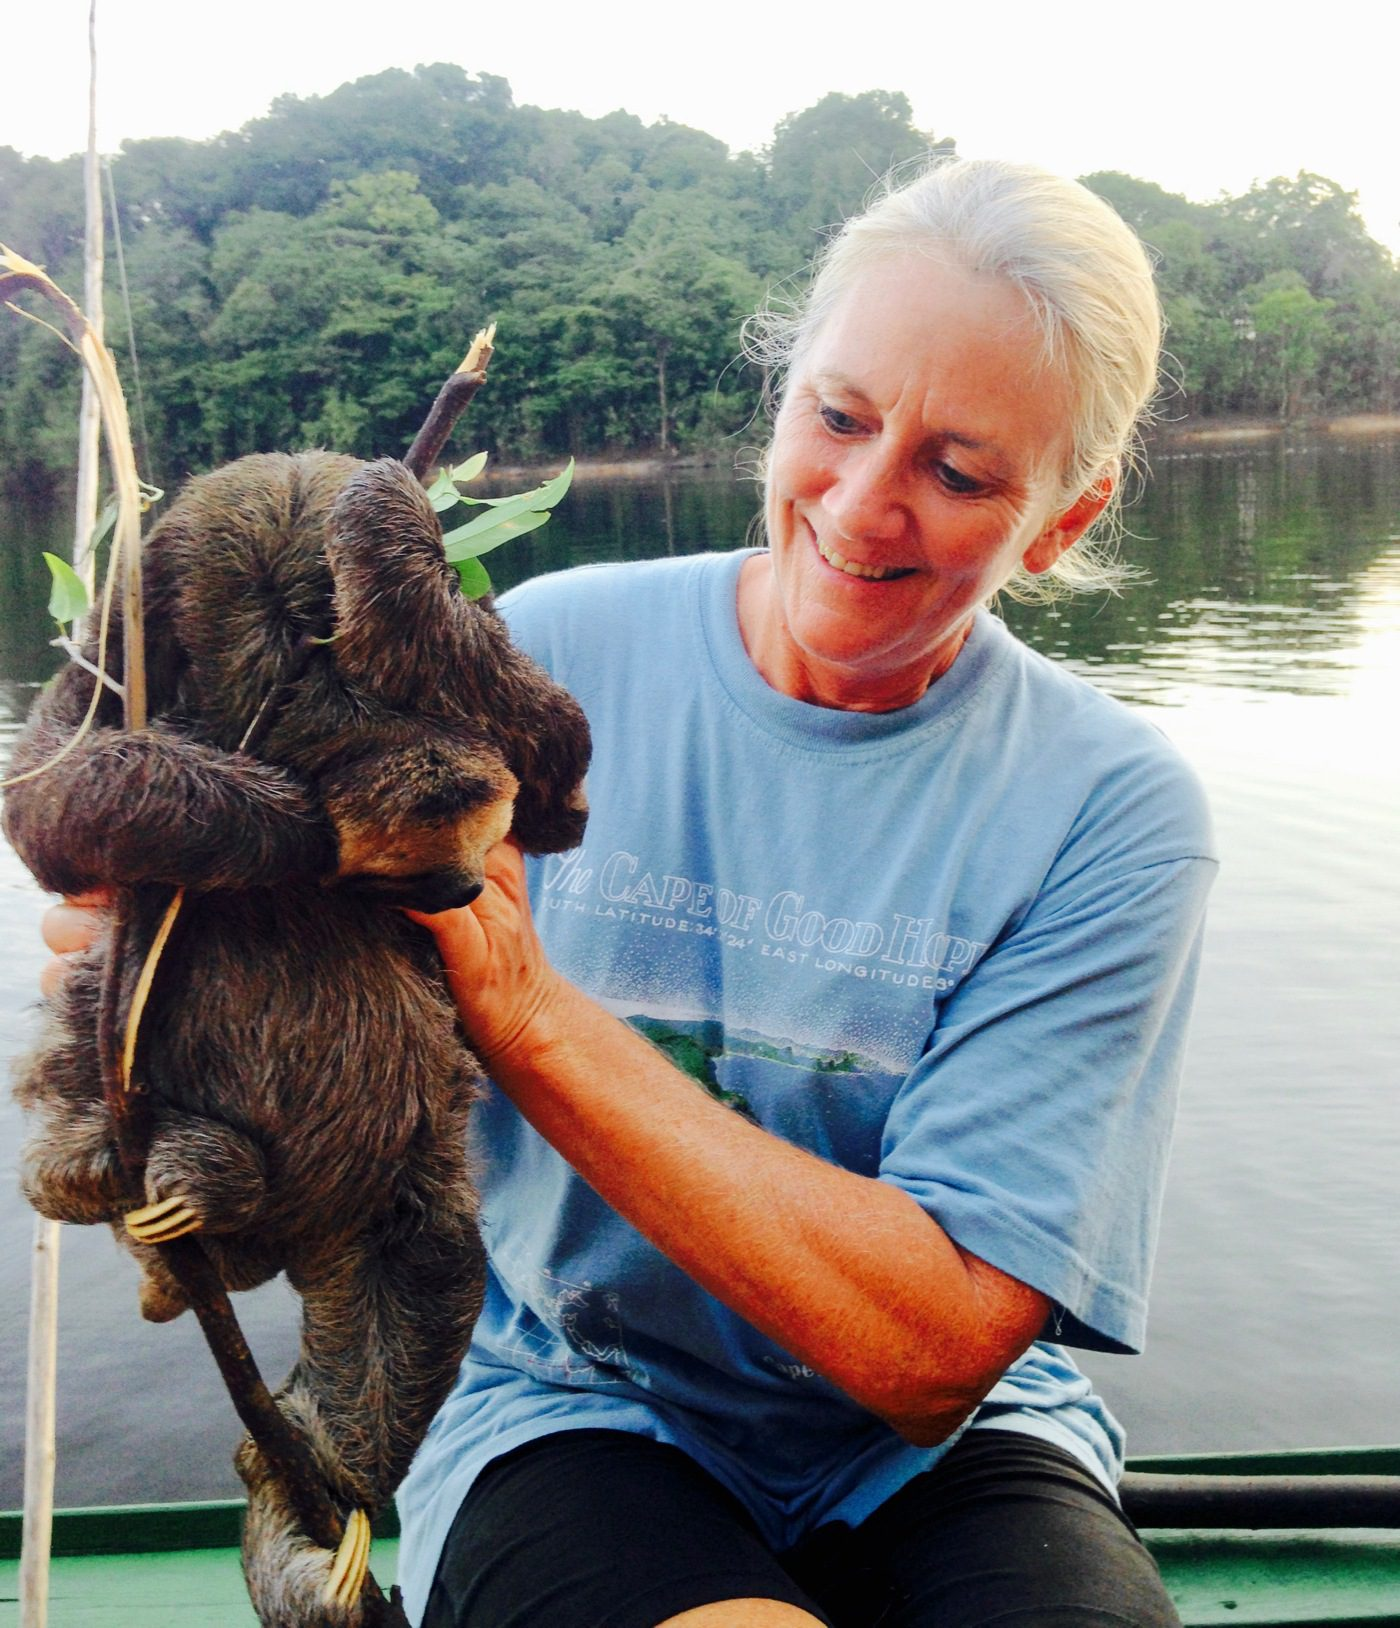 Holding a sloth in a remote village in Brazil.